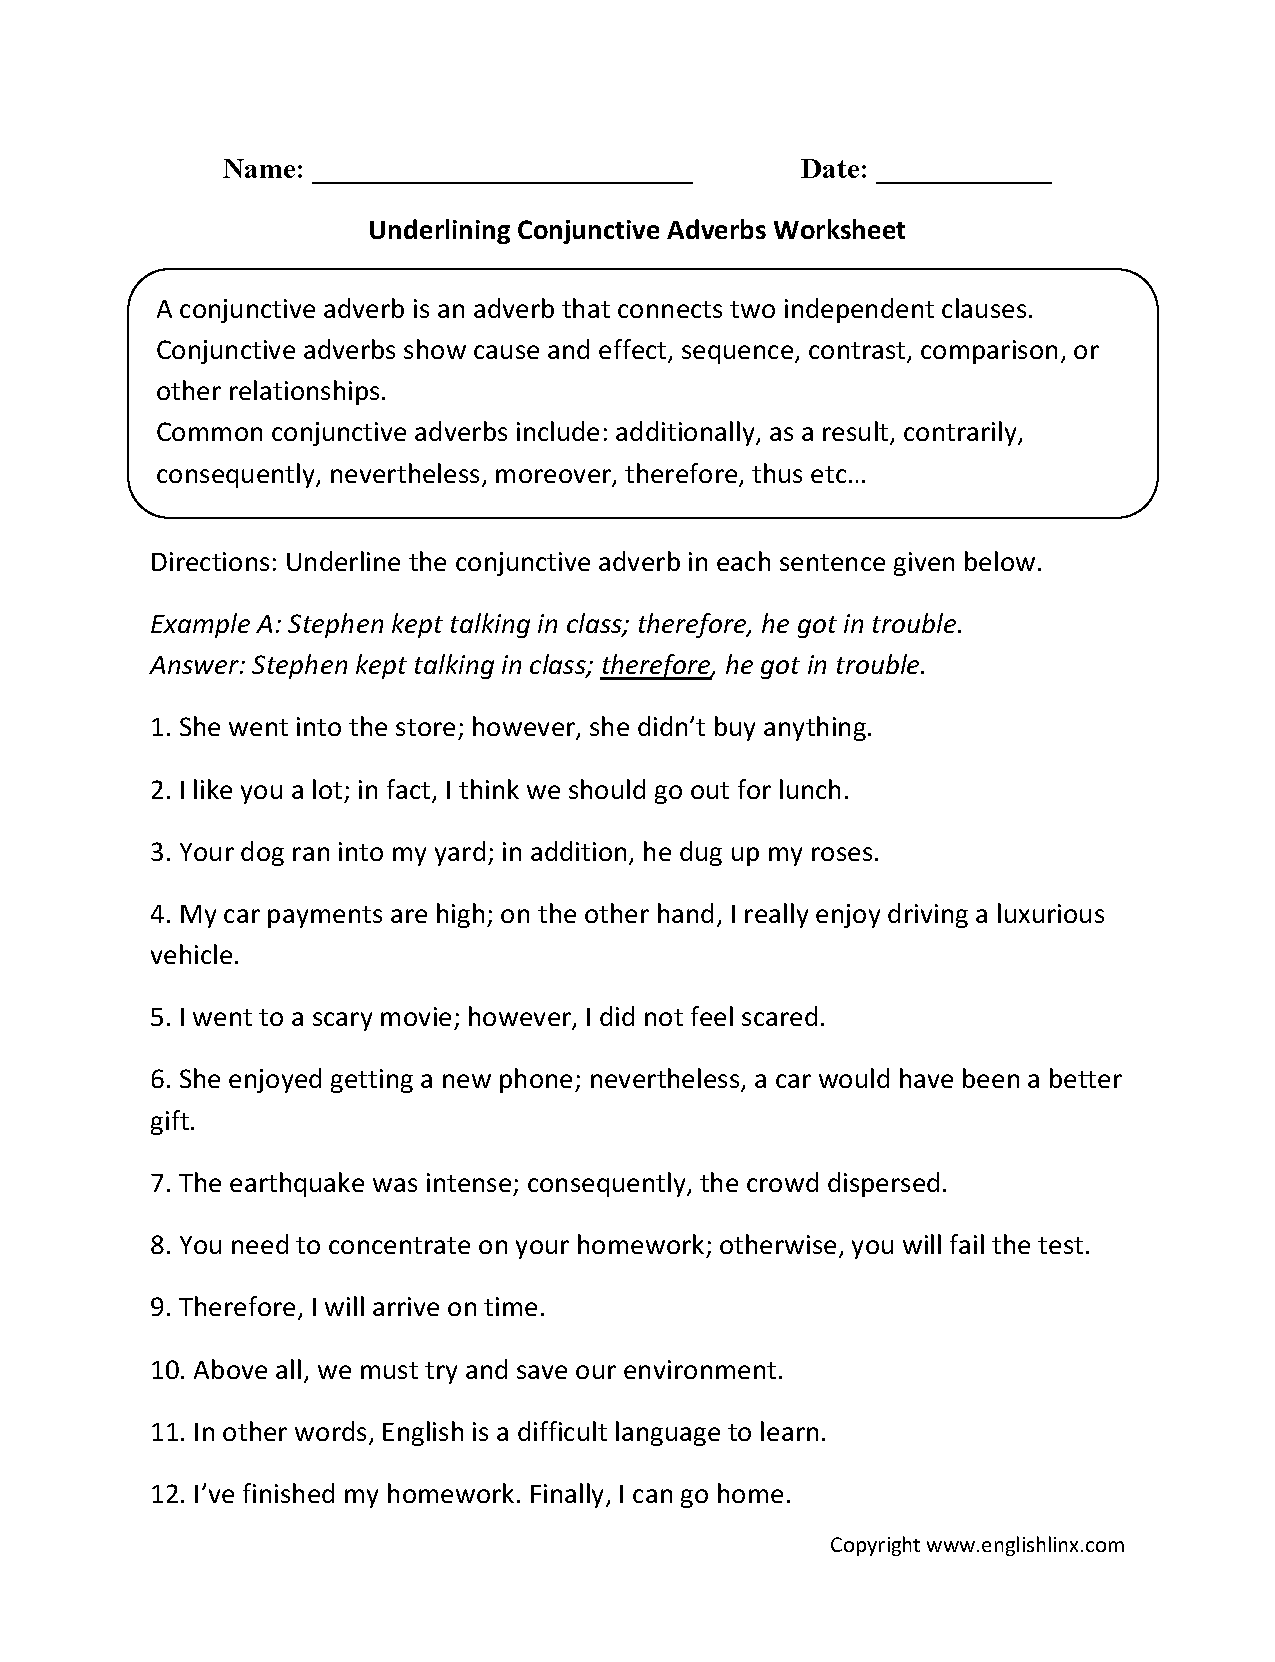 Weirdmailus  Pretty Englishlinxcom  Conjunctions Worksheets With Likable Worksheet With Divine Transversals Worksheet Also Printable Bible Study Worksheets For Adults In Addition Coin Counting Worksheets And Empirical Rule Worksheet As Well As Vba Create New Worksheet Additionally Act Values Worksheet From Englishlinxcom With Weirdmailus  Likable Englishlinxcom  Conjunctions Worksheets With Divine Worksheet And Pretty Transversals Worksheet Also Printable Bible Study Worksheets For Adults In Addition Coin Counting Worksheets From Englishlinxcom